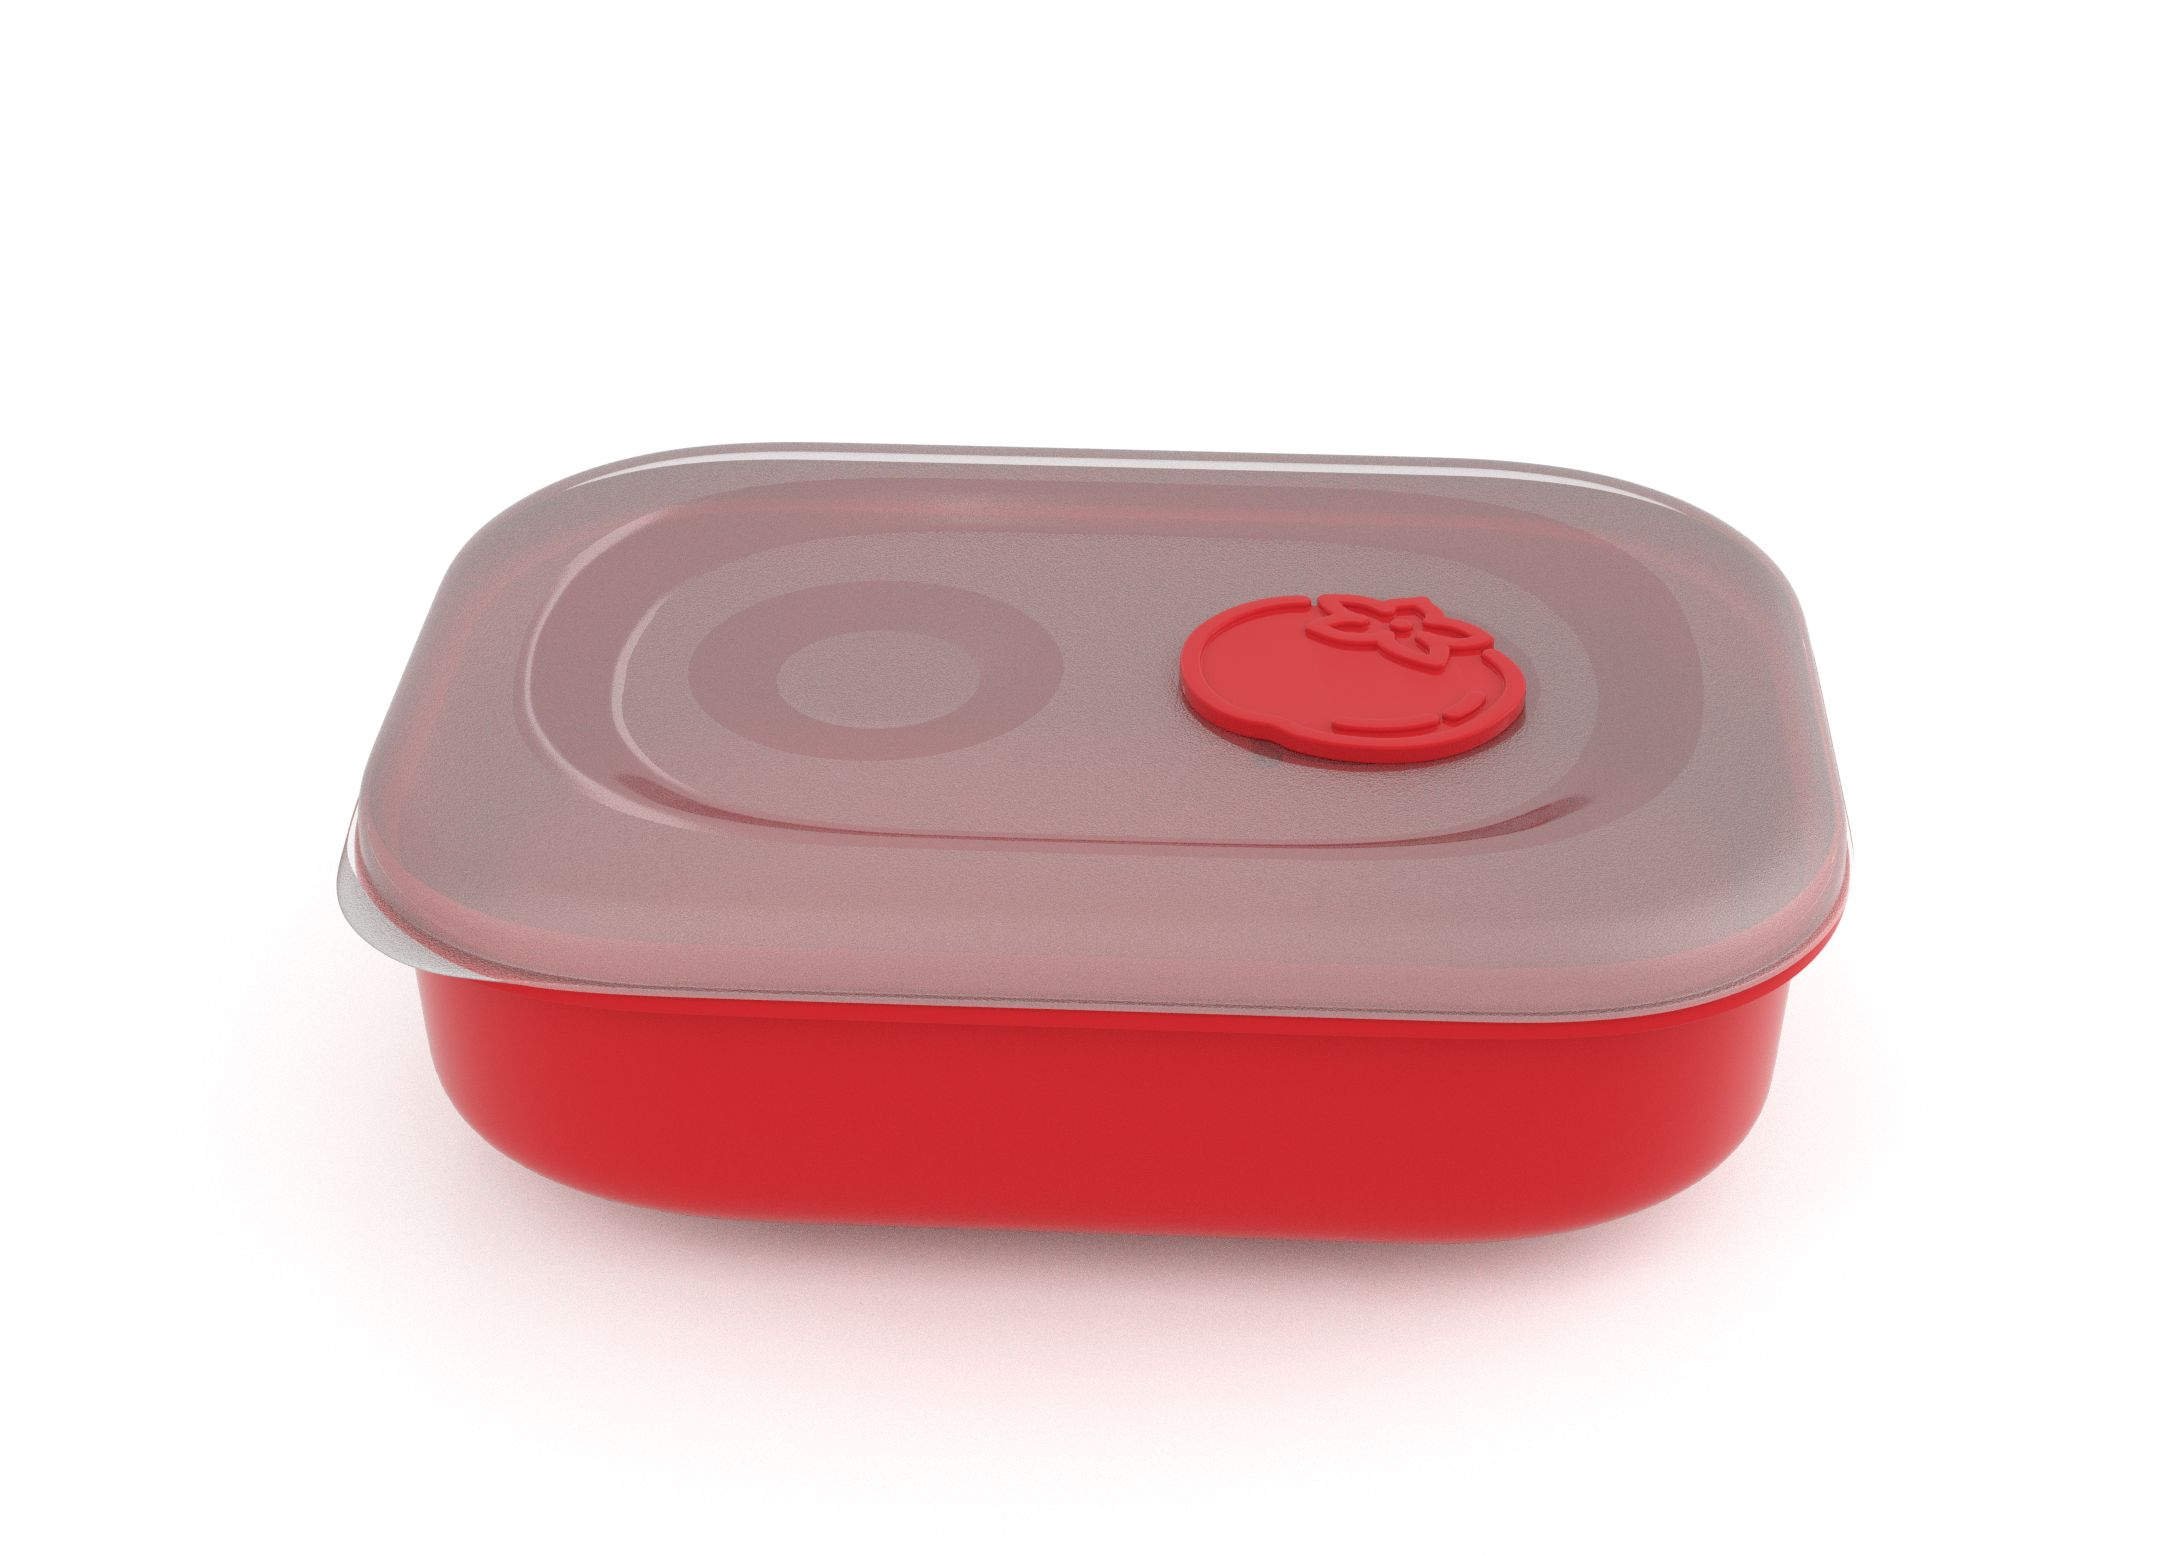 Tama Lock Rectangular Food Container 1.8L 9182 with Steam Release Tomato Valve Bright Red